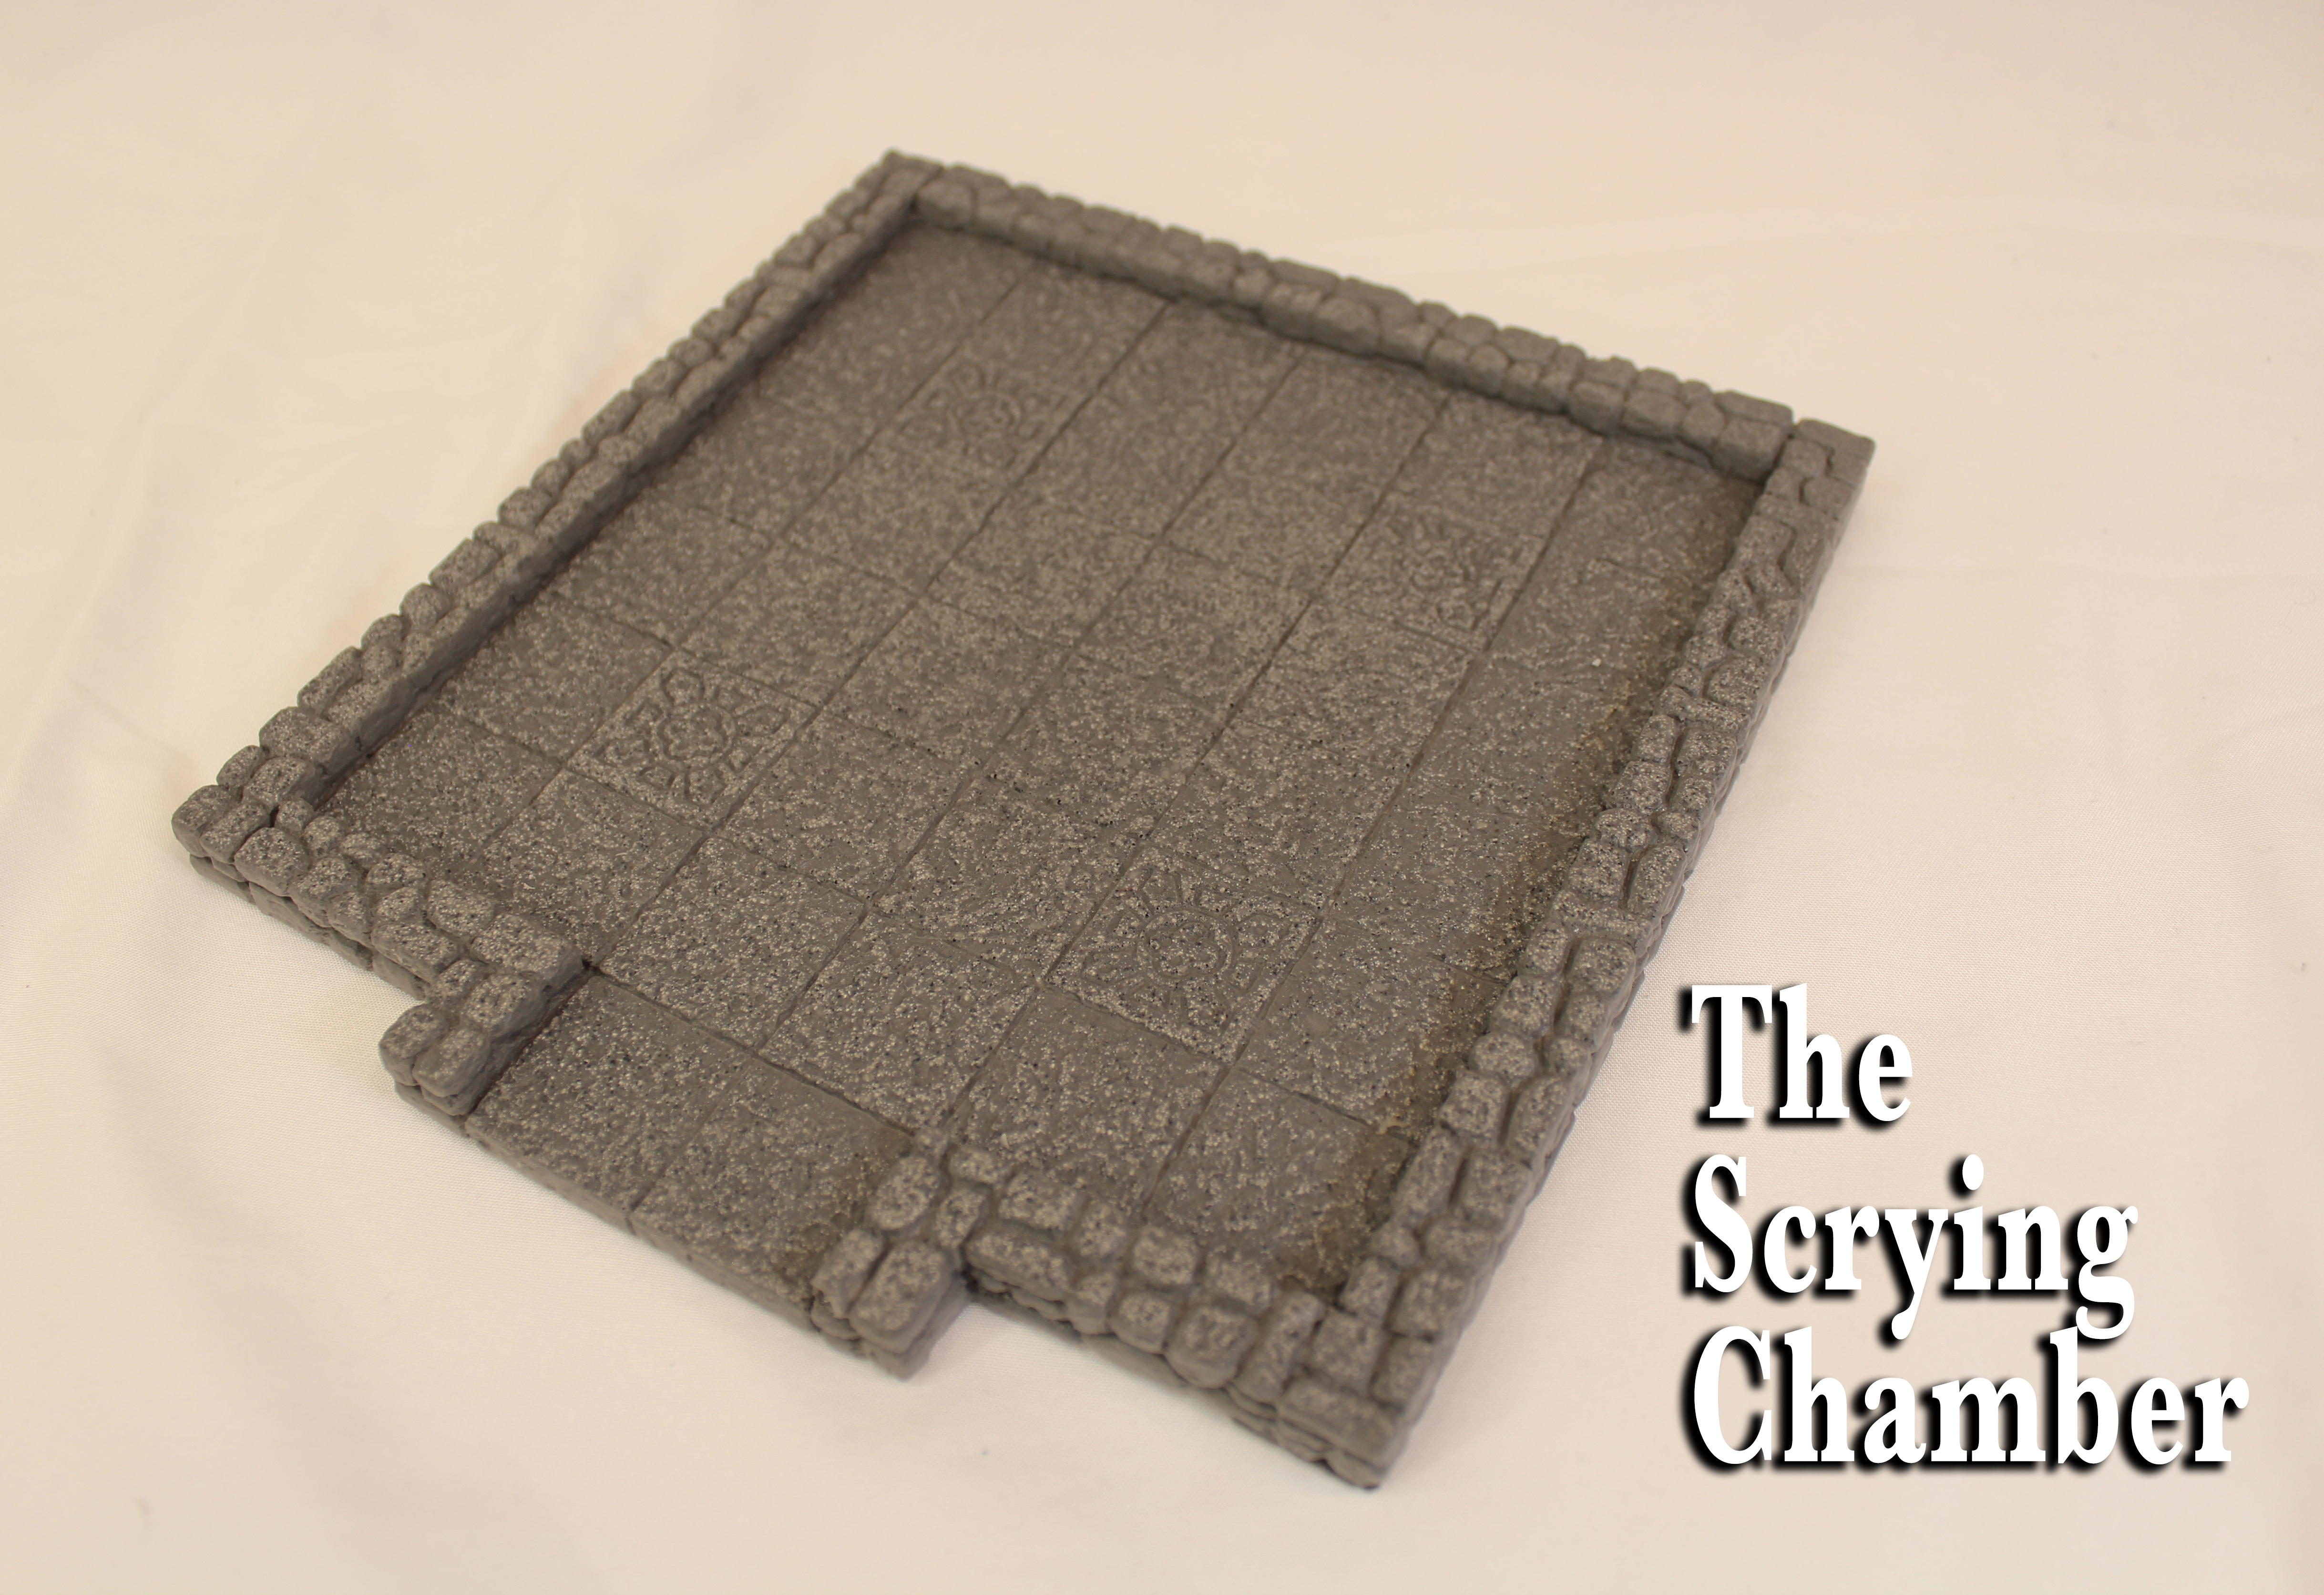 The Scrying Chamber